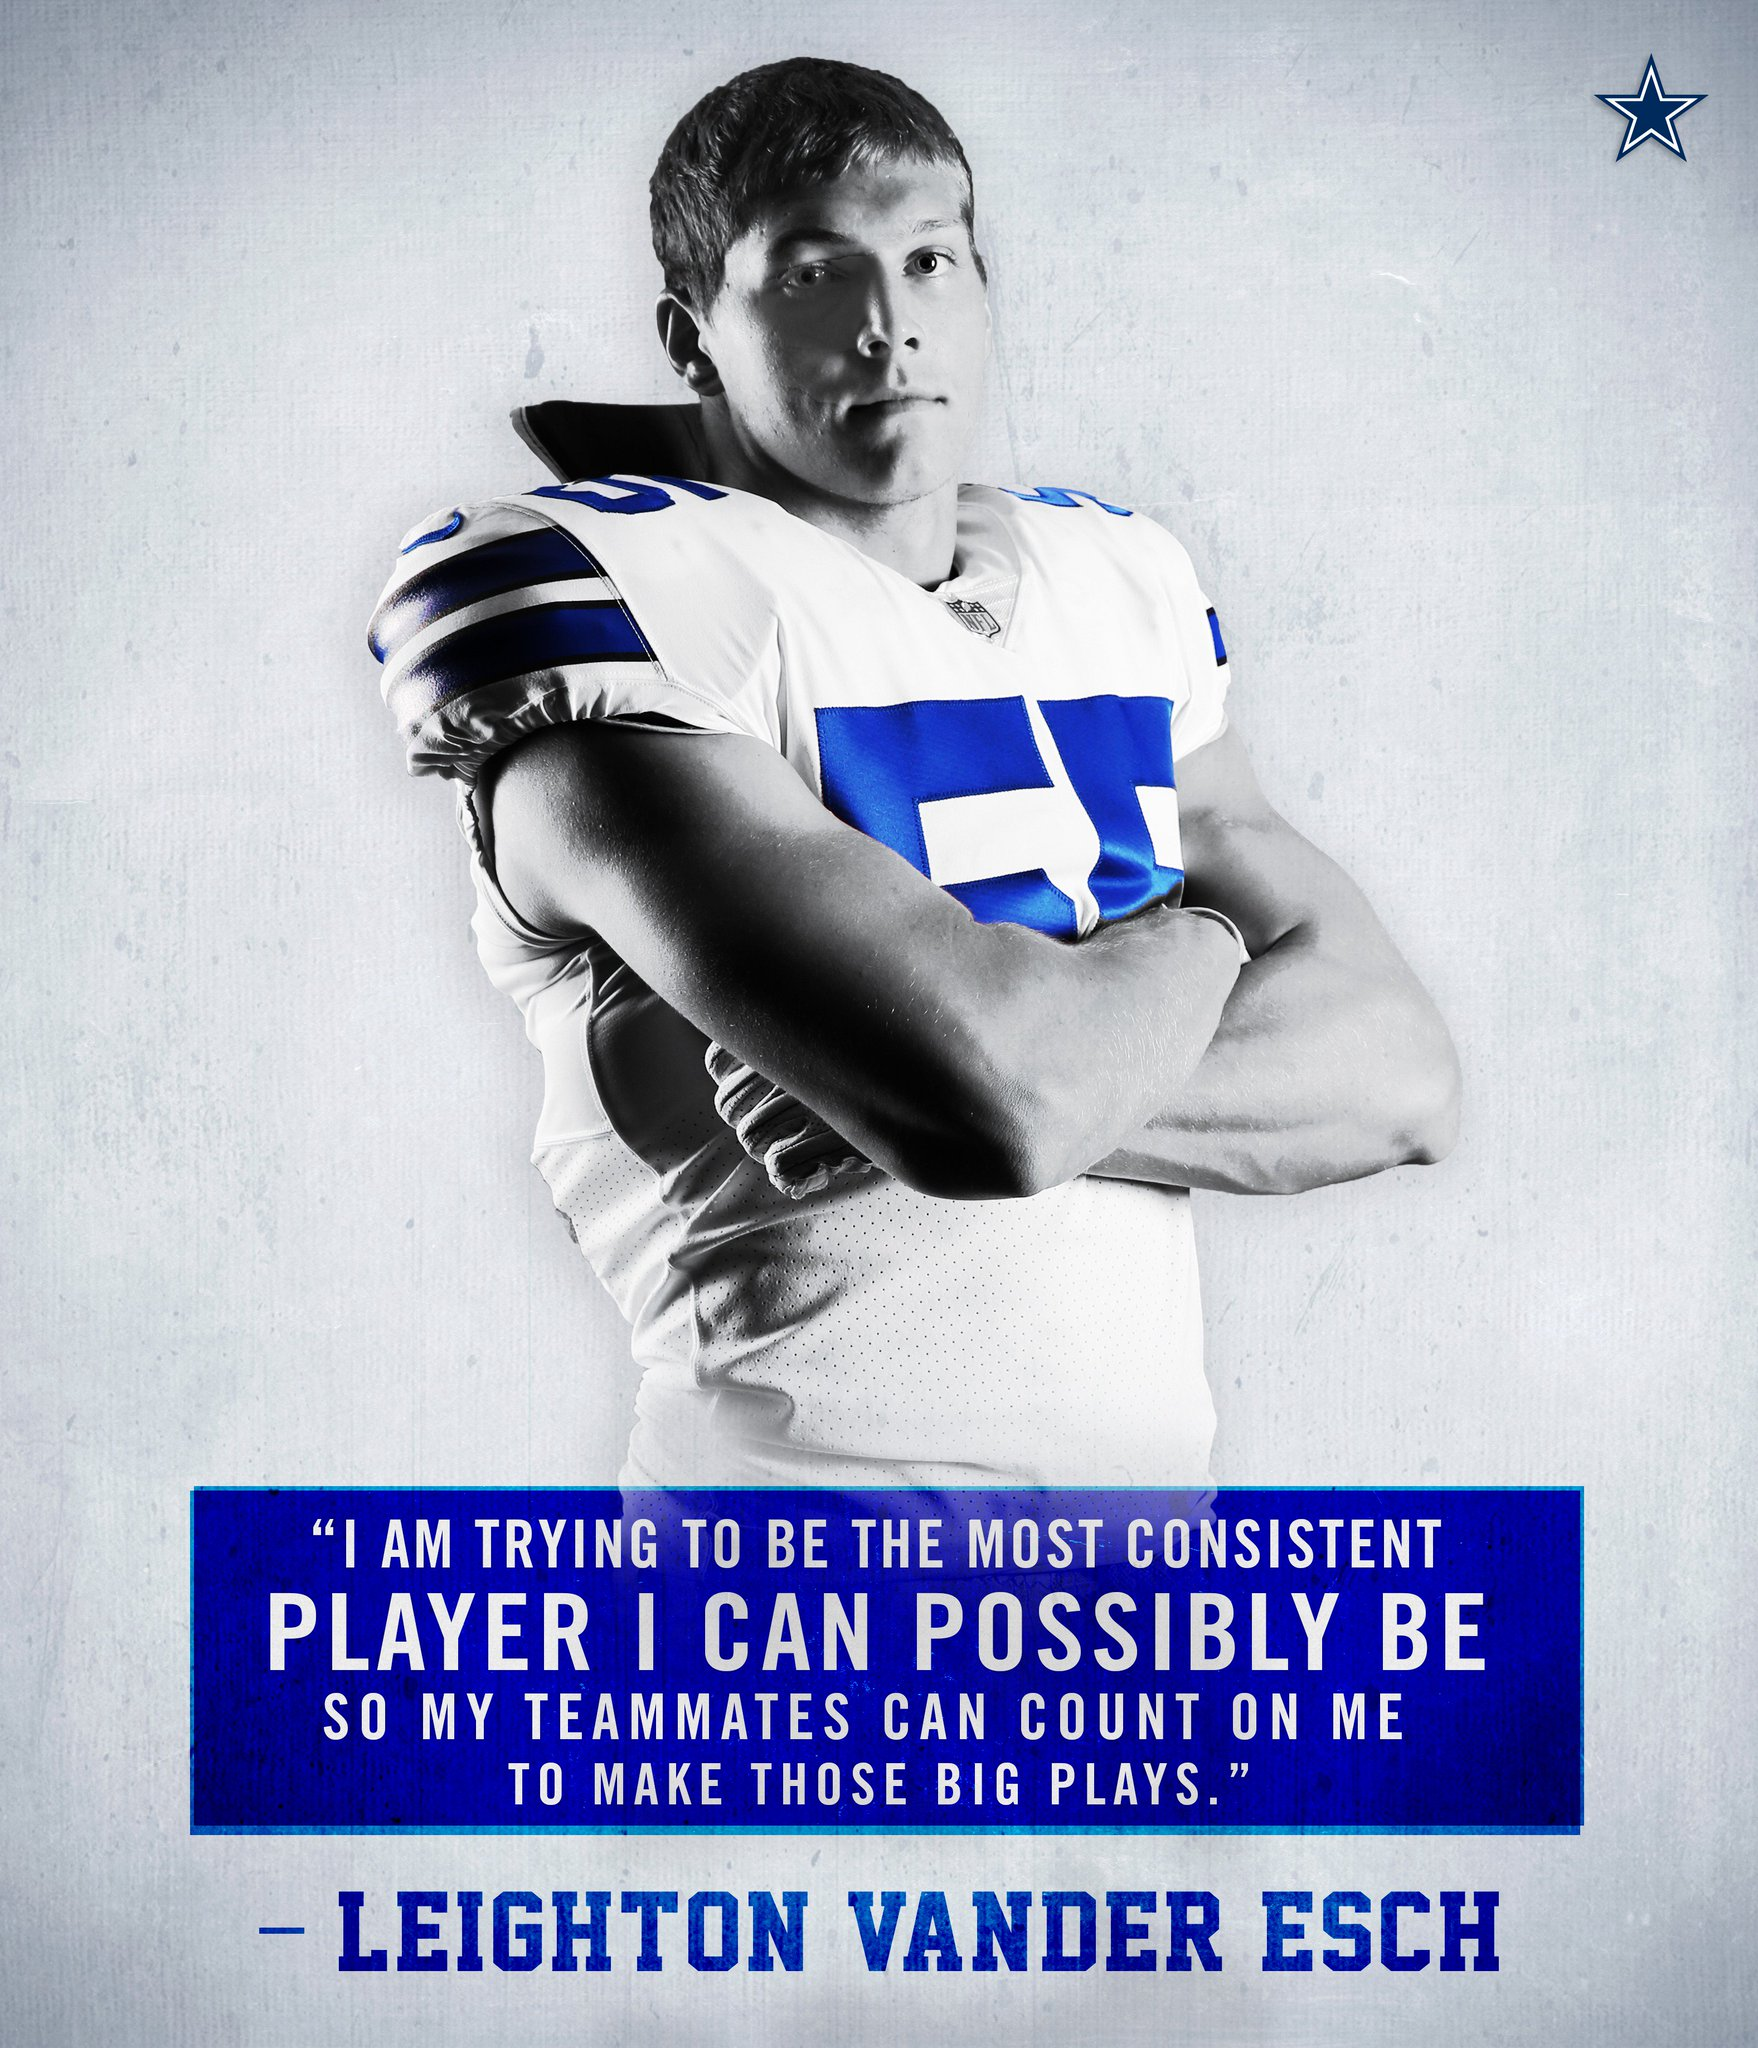 Focused on consistency.  @VanderEsch38 | #DallasCowboys https://t.co/MWfeod1G0T